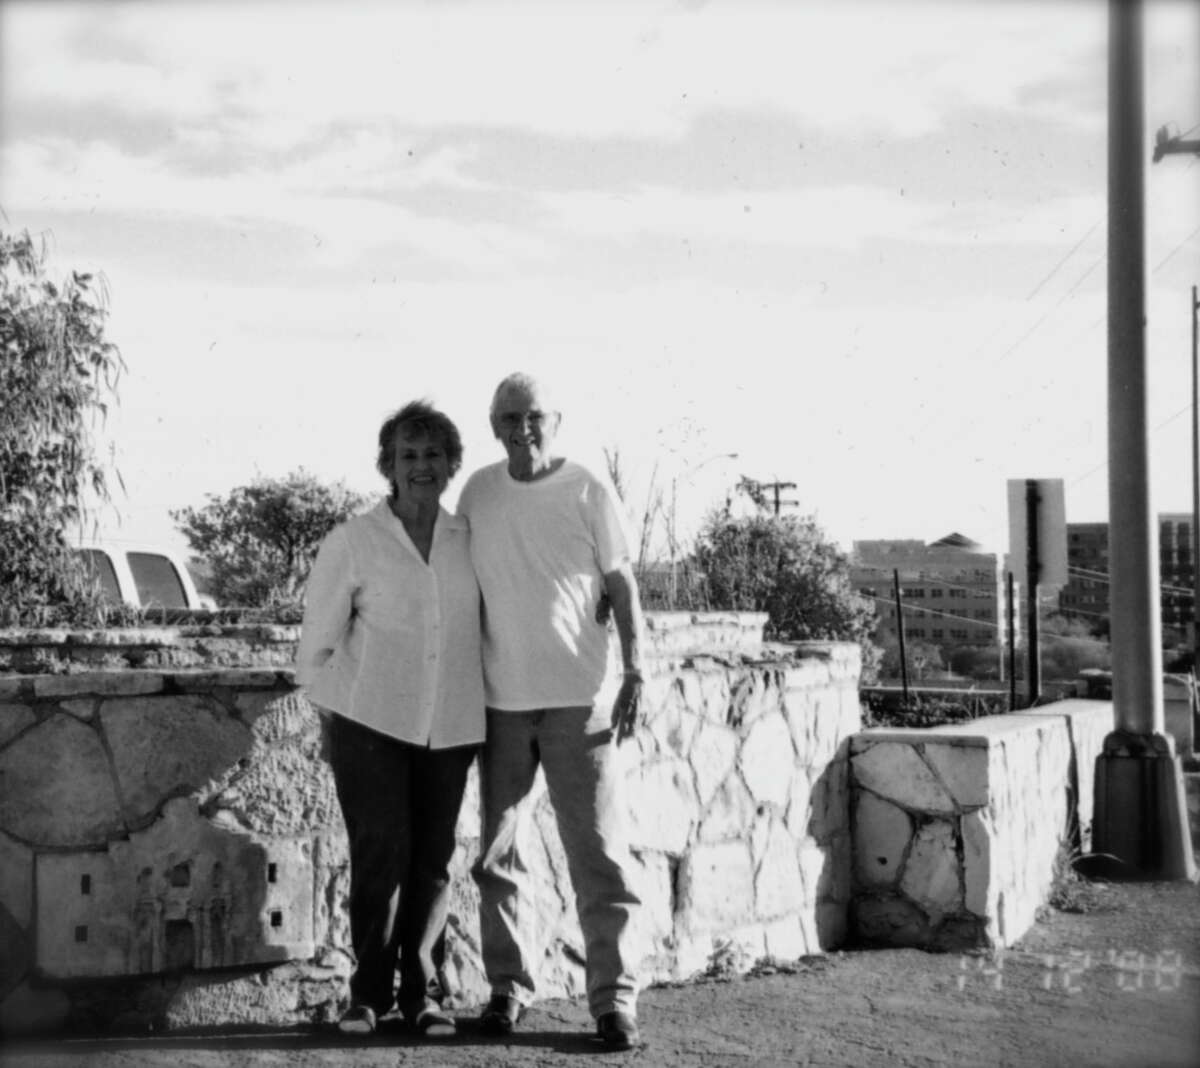 Now: Melvin E. Perez and Mary A. Perez in San Antonio in 2008.